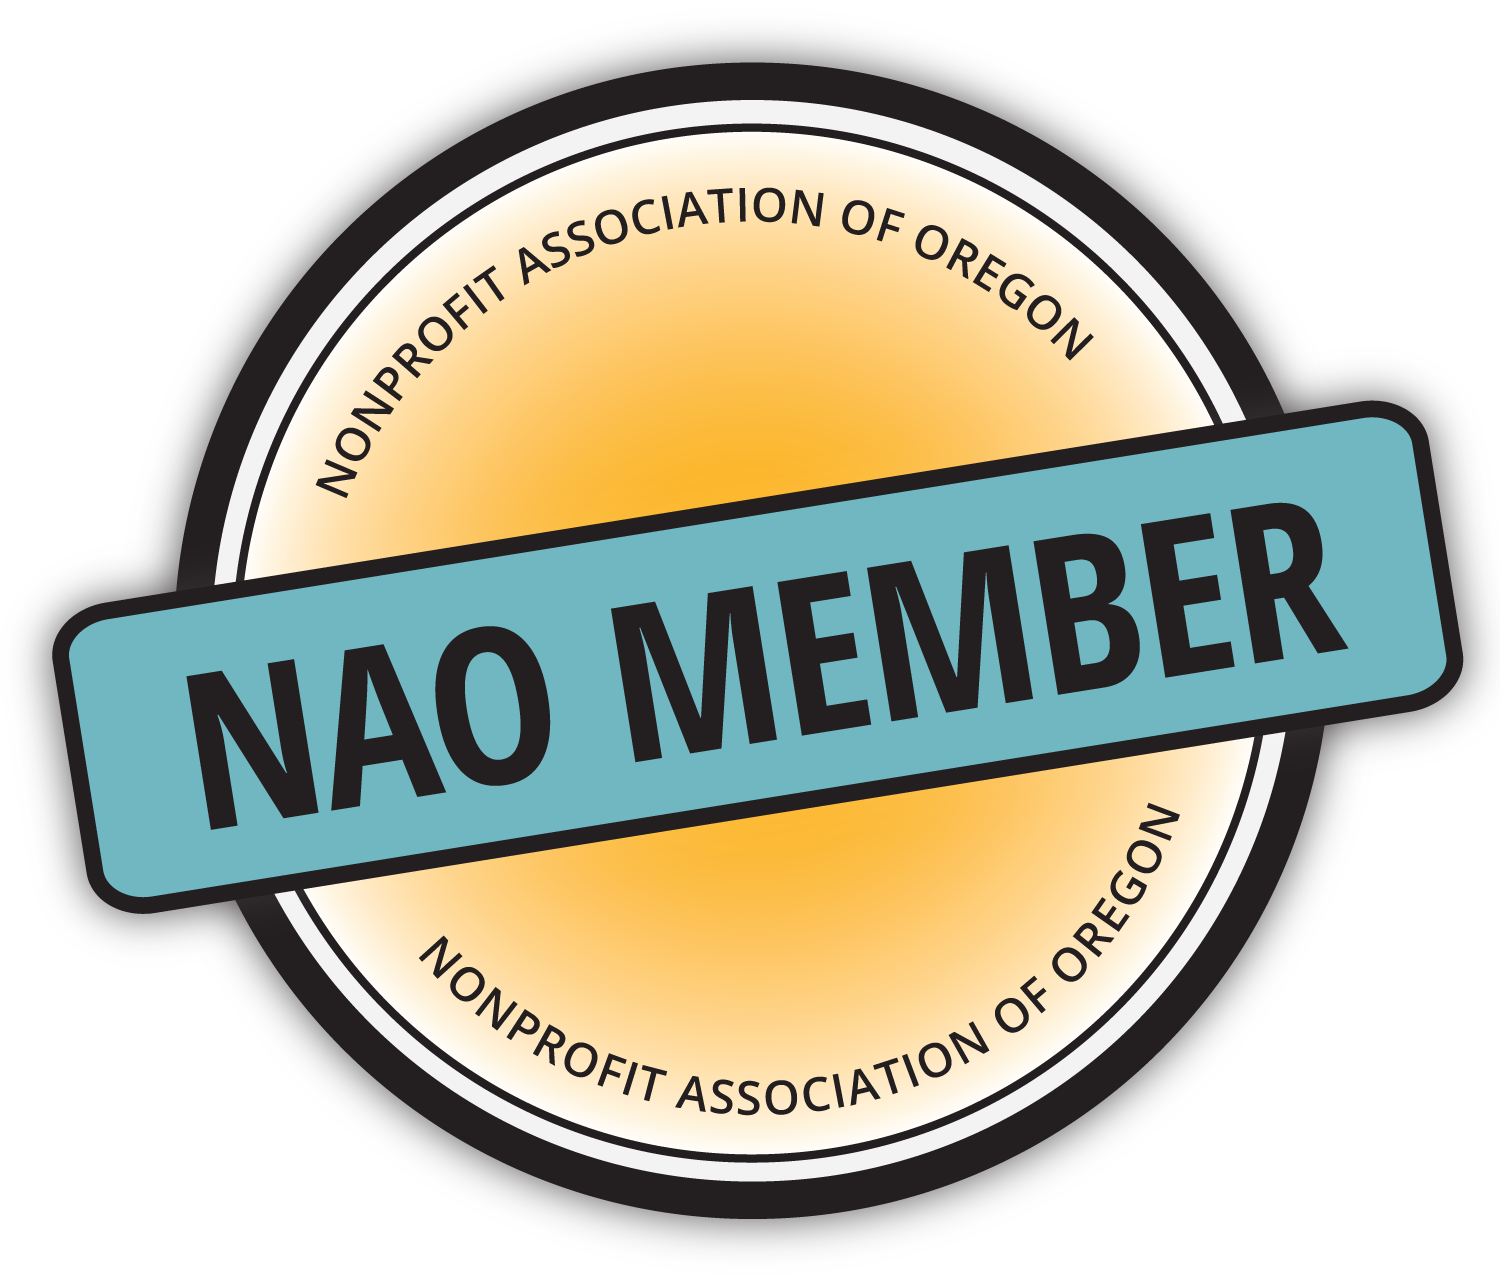 Find me on Nonprofit Association of Oregon